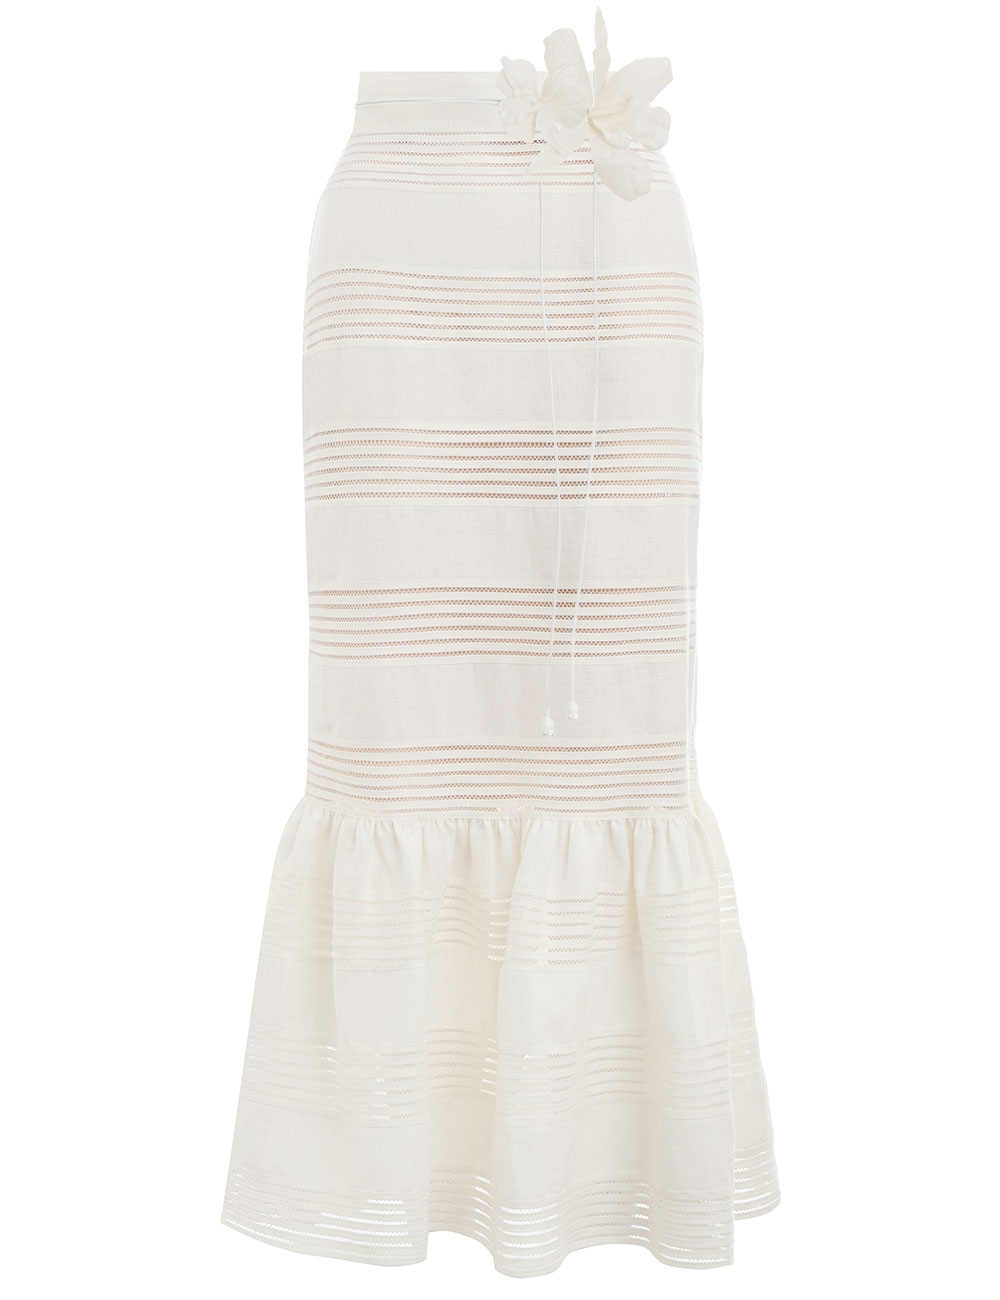 02f5215291 1.5469scor.ivo.ivory-corsage-linear-skirt -flat.jpg?width=500&height=645&canvas=500:645&quality=100&bg-color=255,255,255&fit=bounds